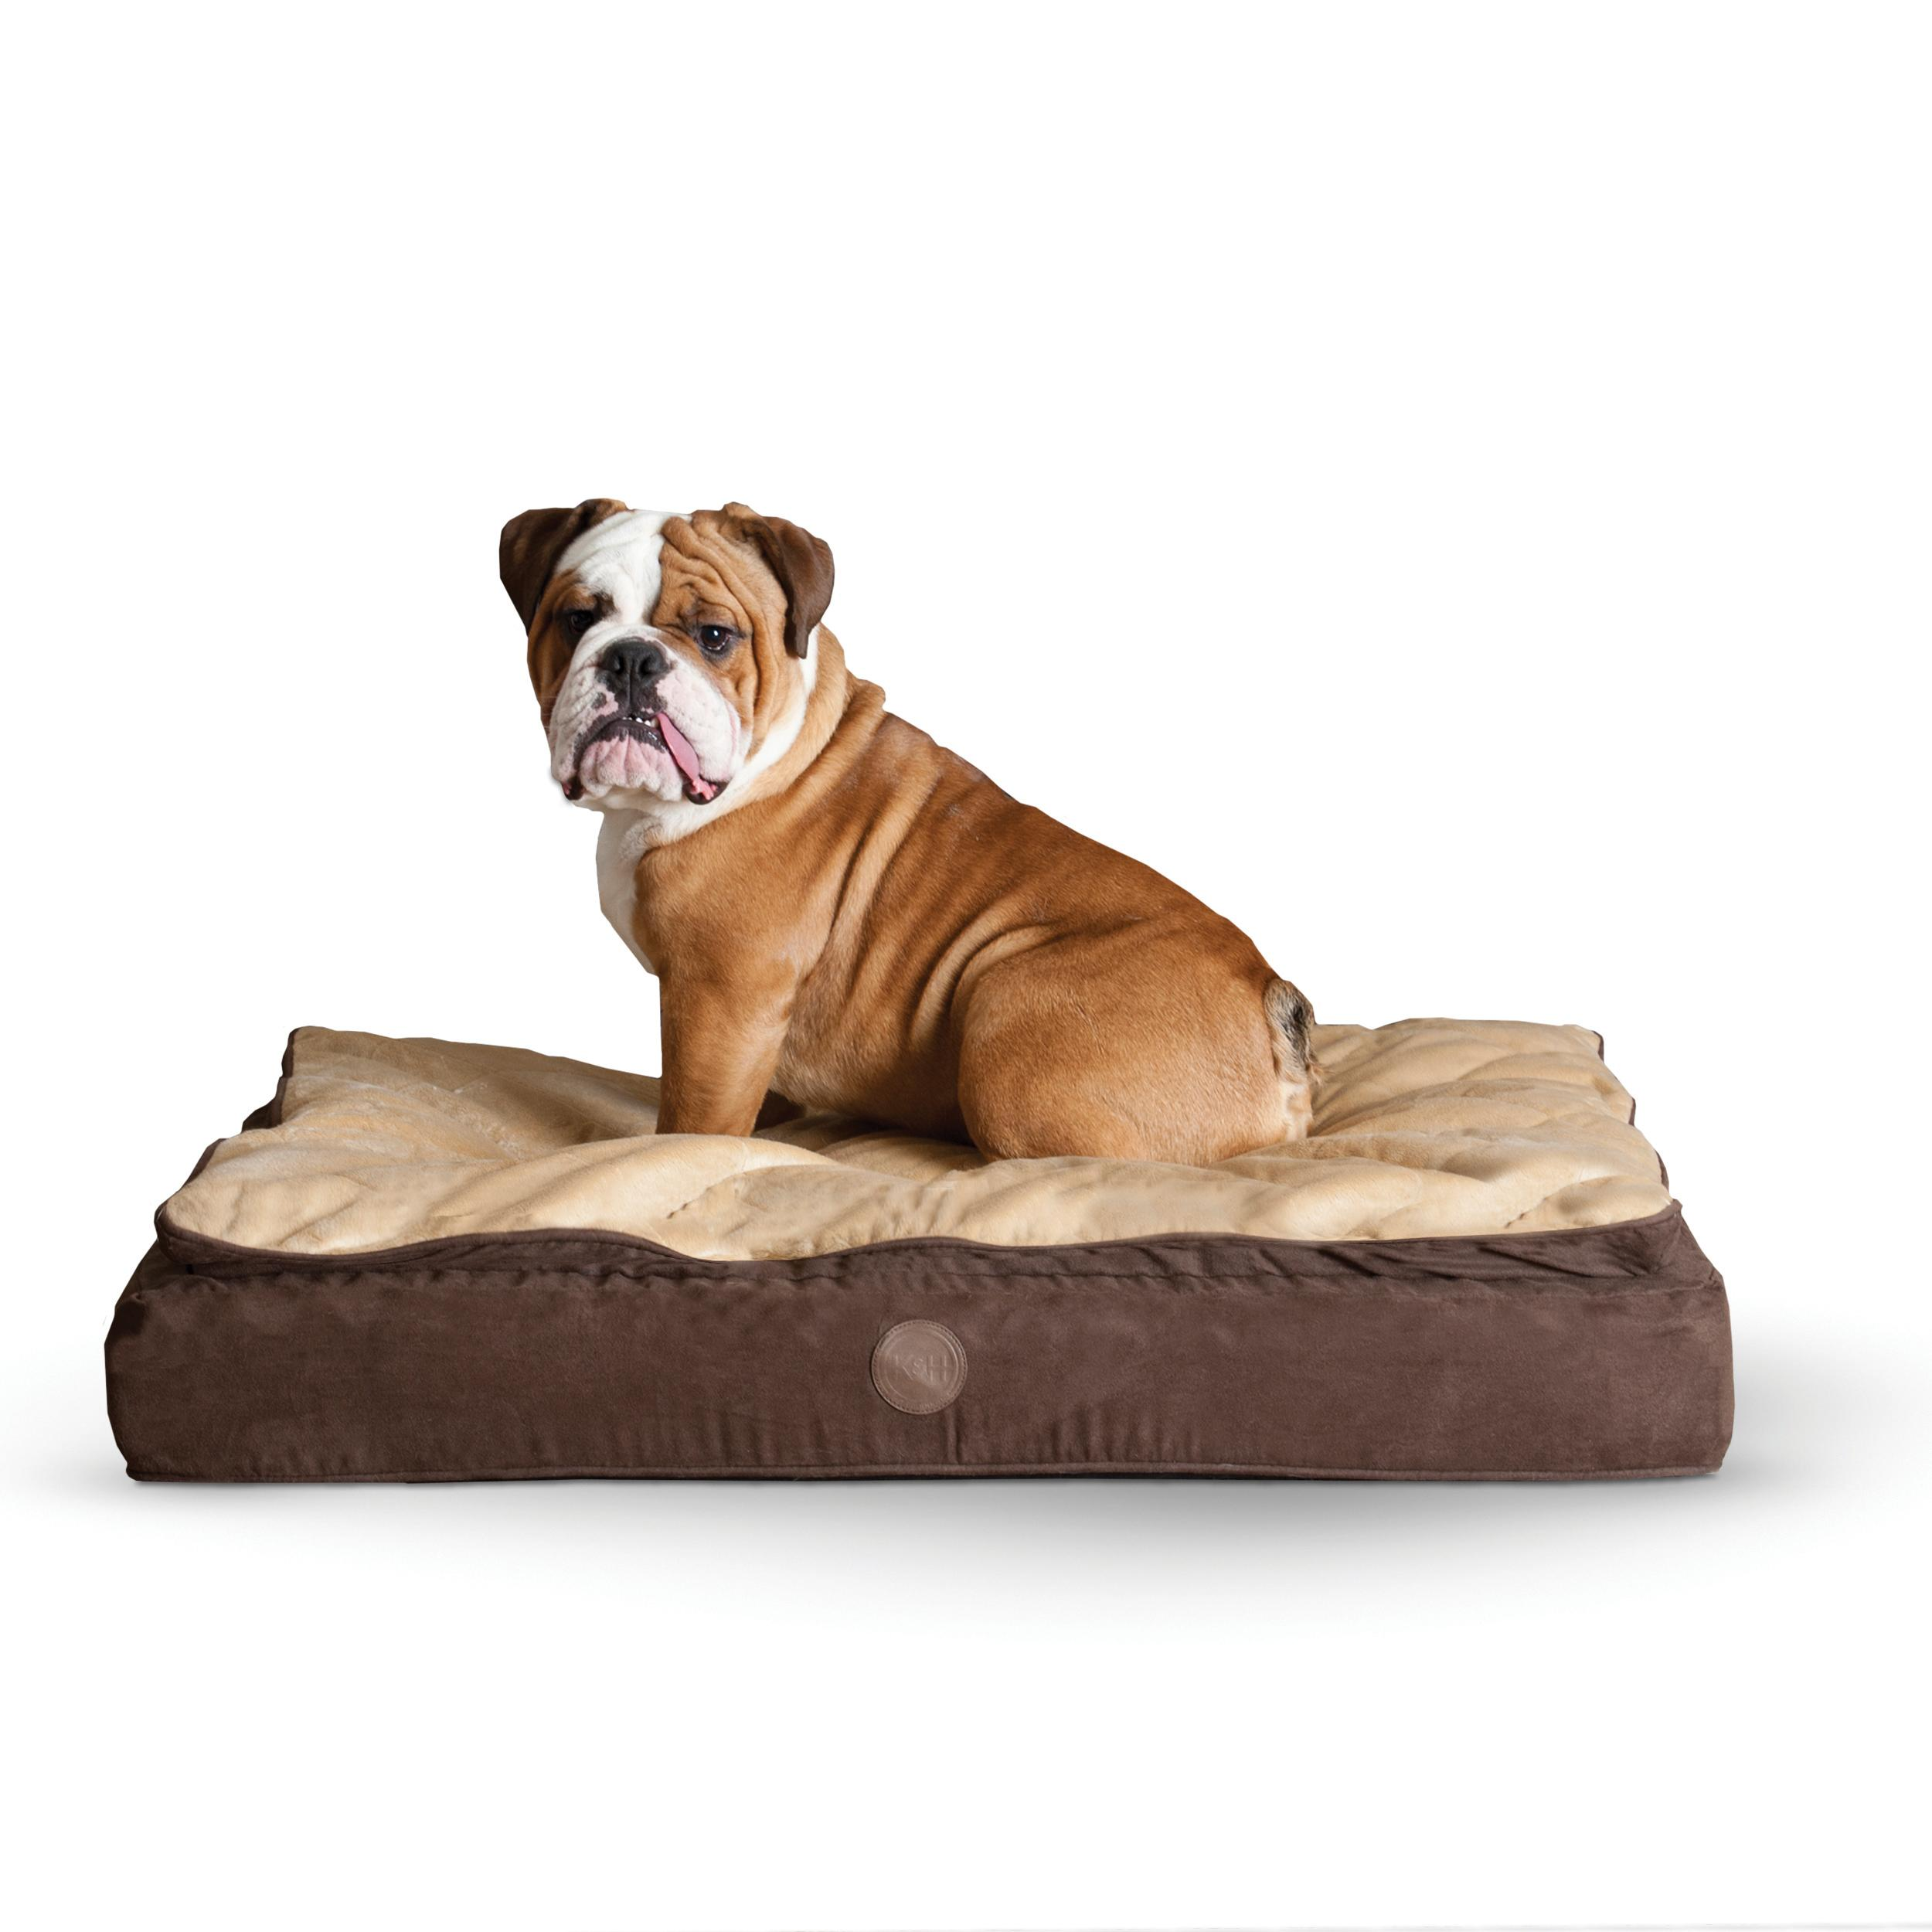 hidden orders product to pet shipping extra large on beds baxter bed orthopedic valley small and dog supplies free overstock over couch